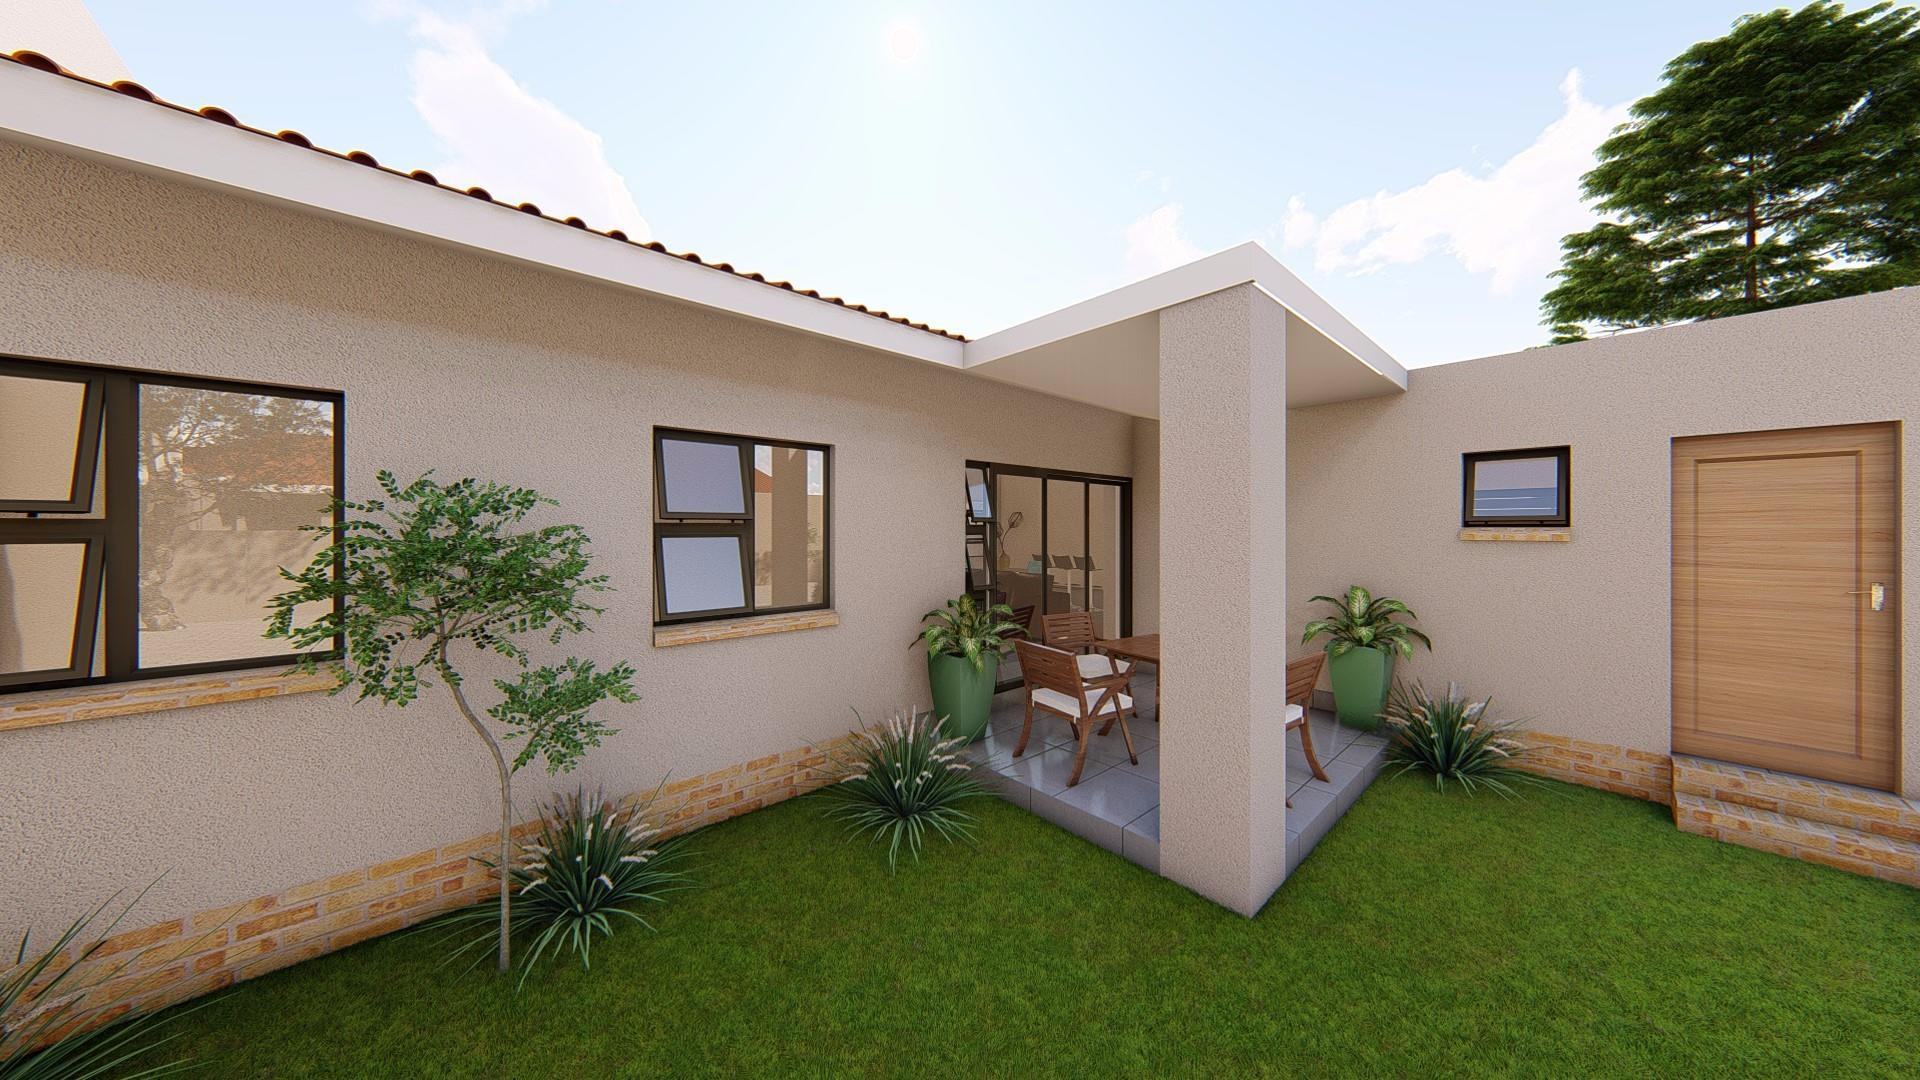 3 Bedroom House For Sale in Ryelands